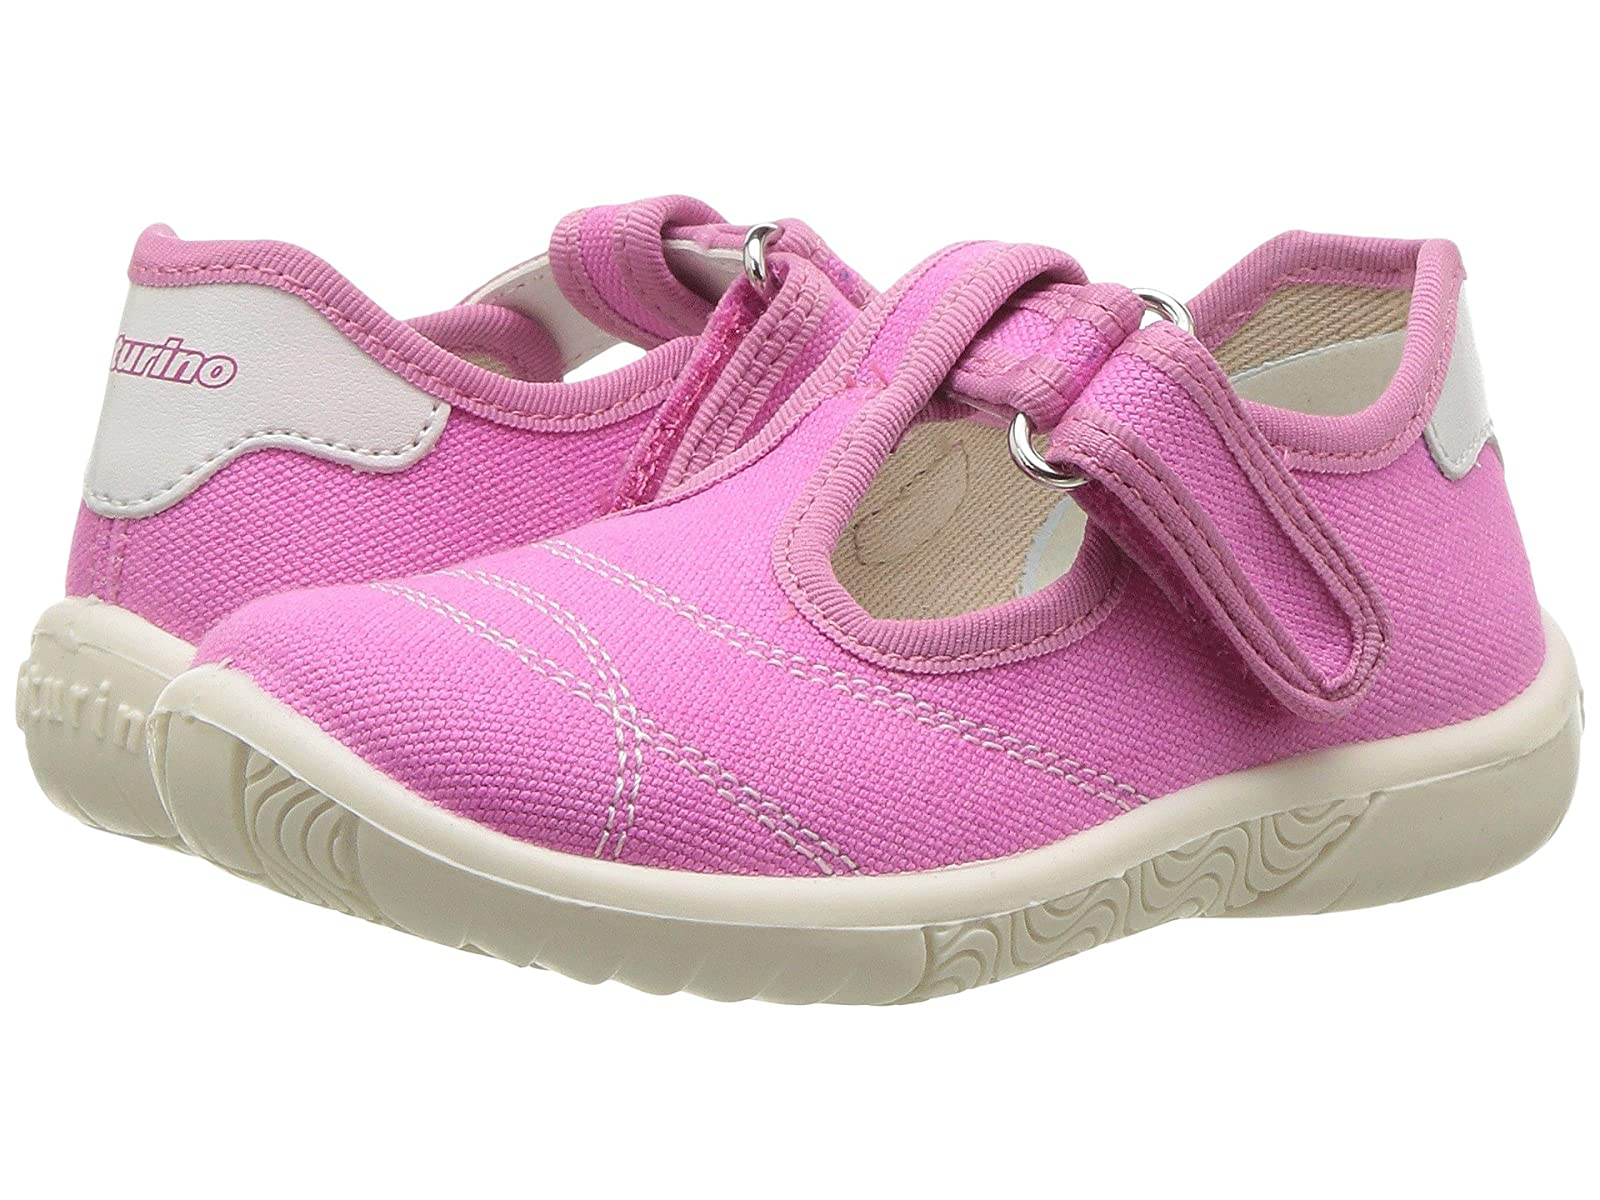 Naturino 7742 USA SS18 (Toddler/Little Kid)Atmospheric grades have affordable shoes